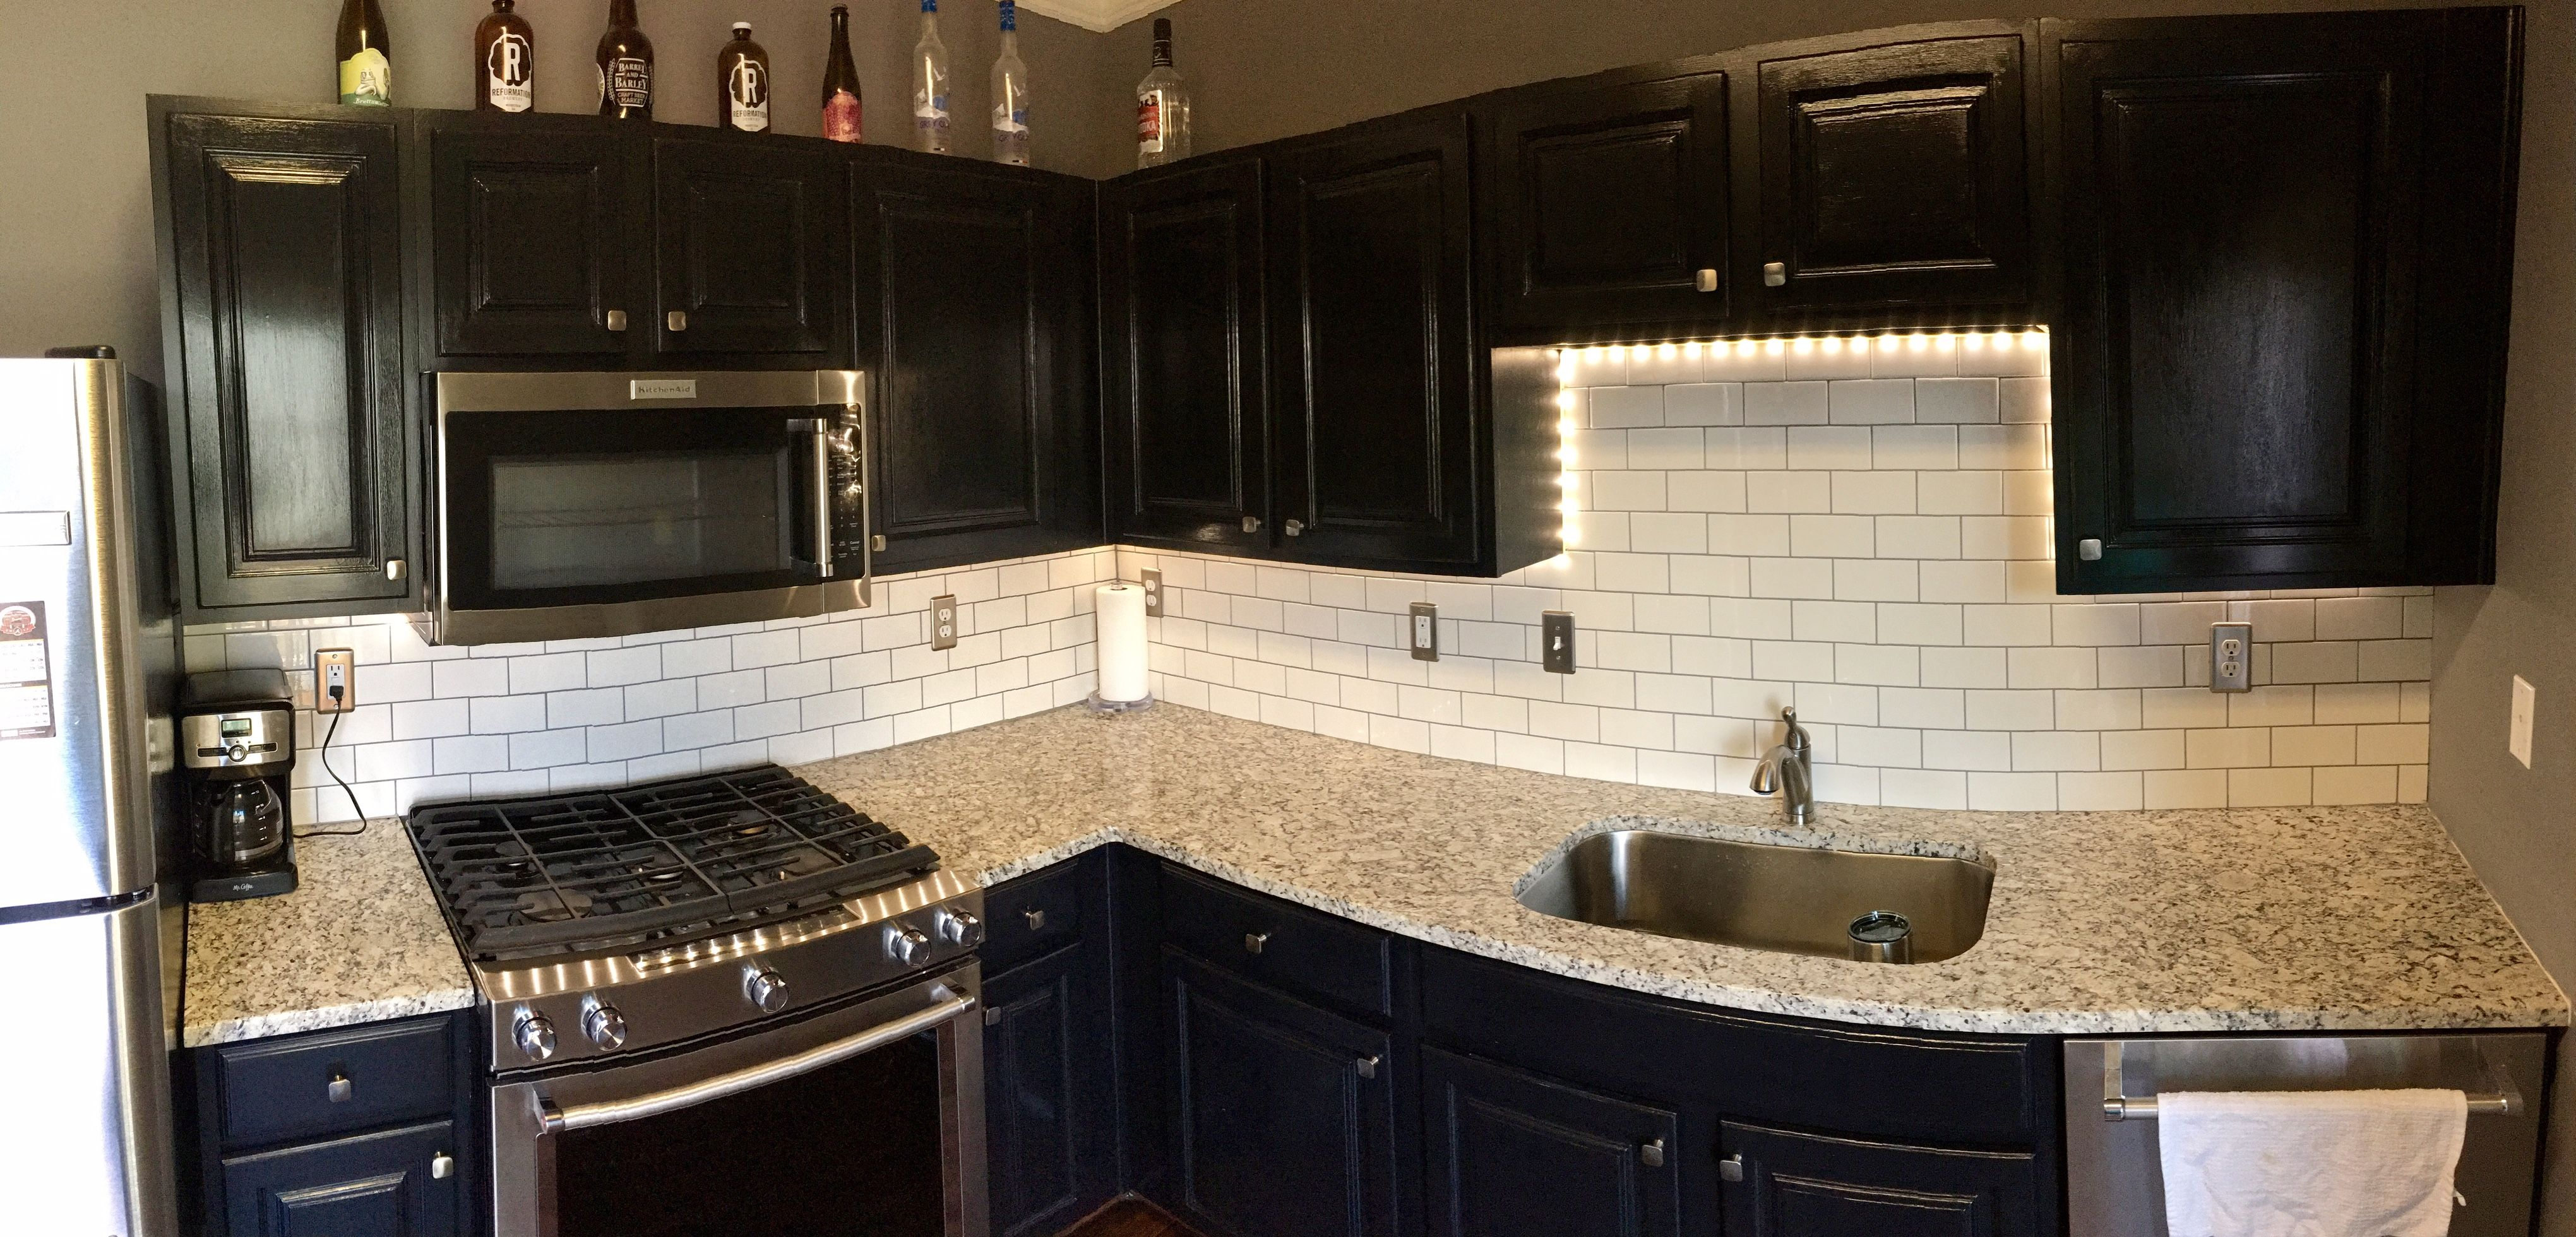 Kitchen renovation cabinet painting tiling and underglow lighting kitchen renovation cabinet painting tiling and underglow lighting diy solutioingenieria Image collections